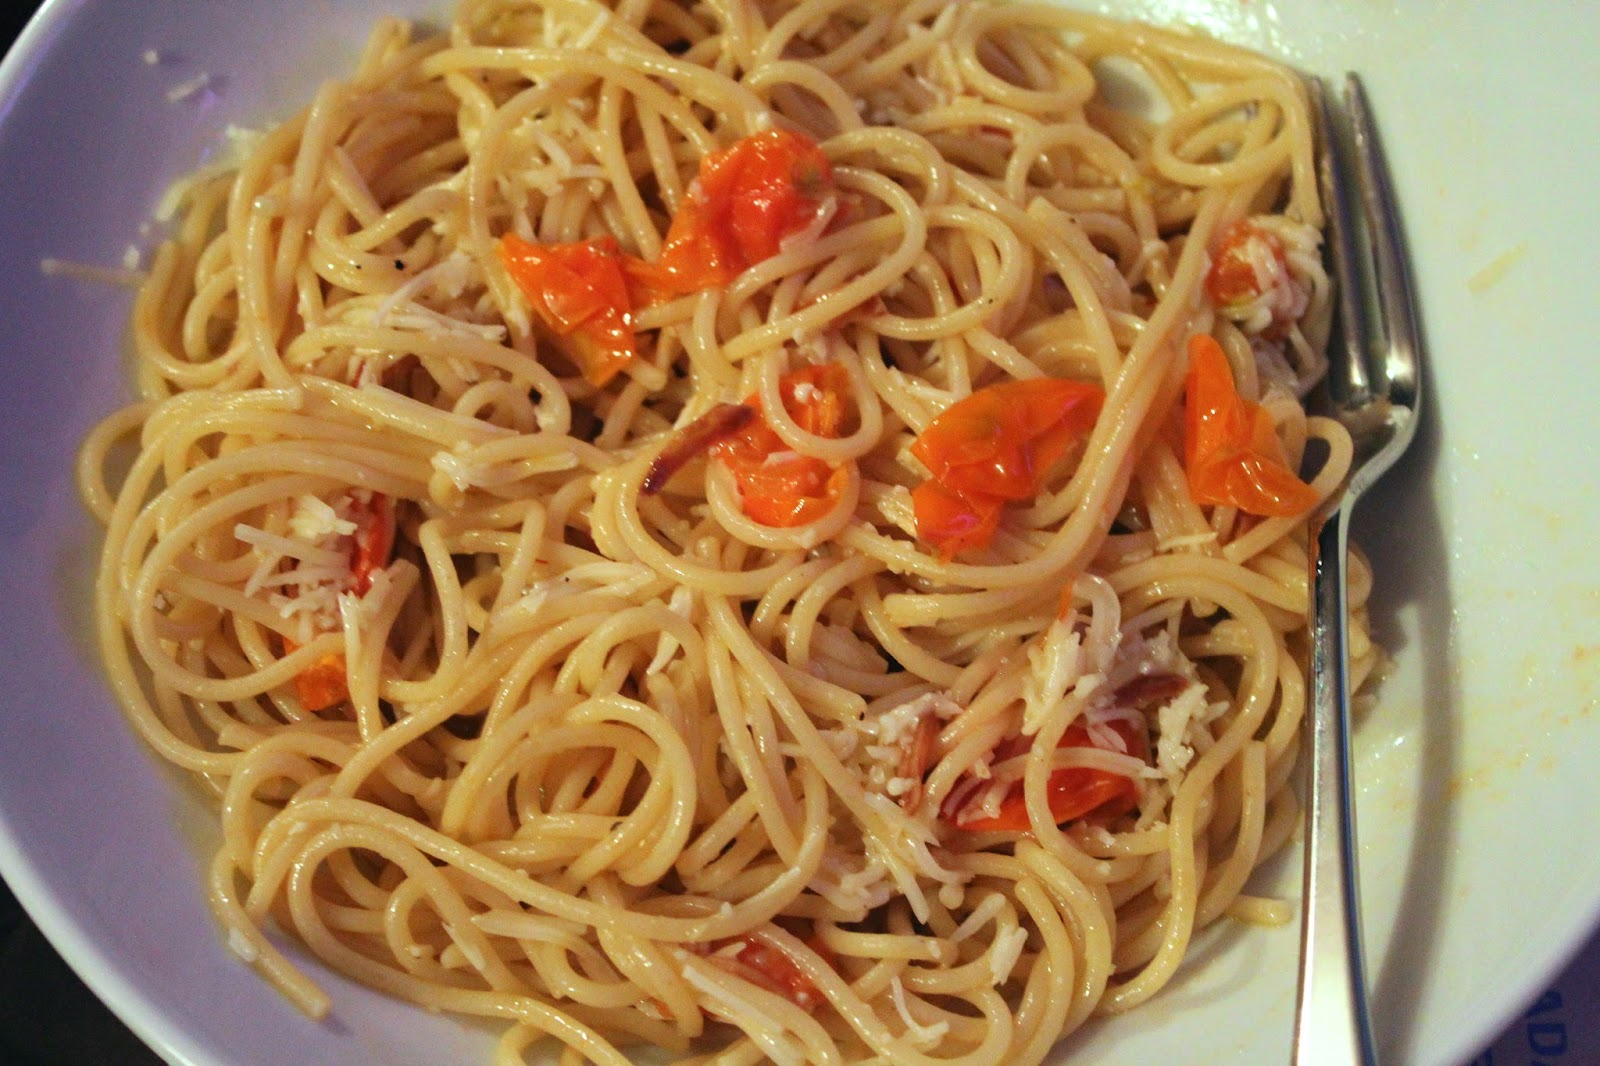 Pasta with Sun Gold tomatoes and garlic